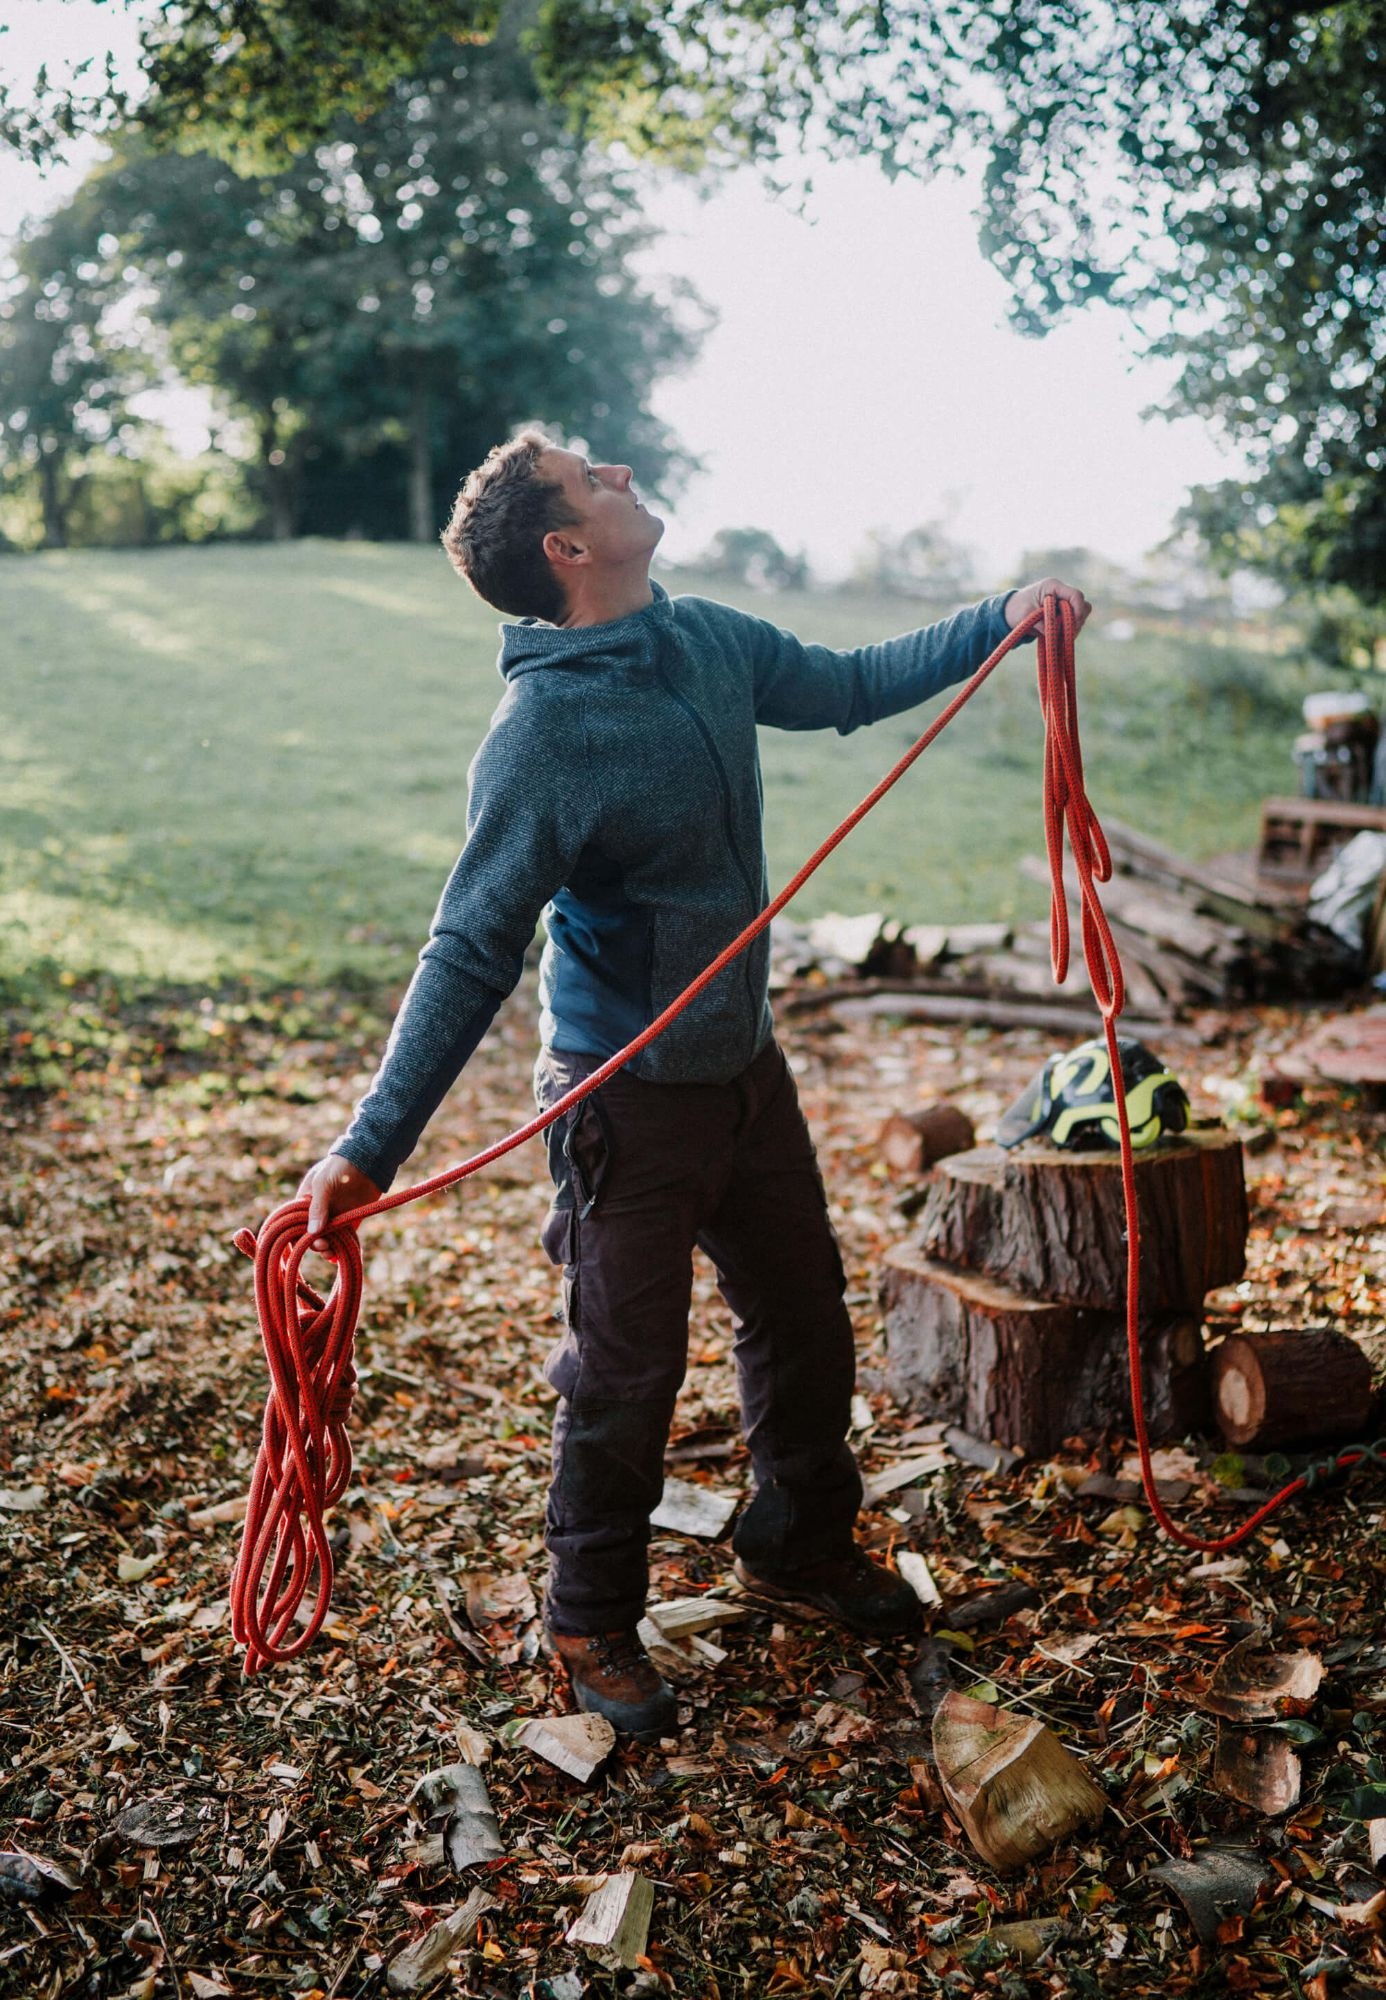 A photo of a Tree Surgeon from the Silver Oak team throwing a rope into the tree to start climbing